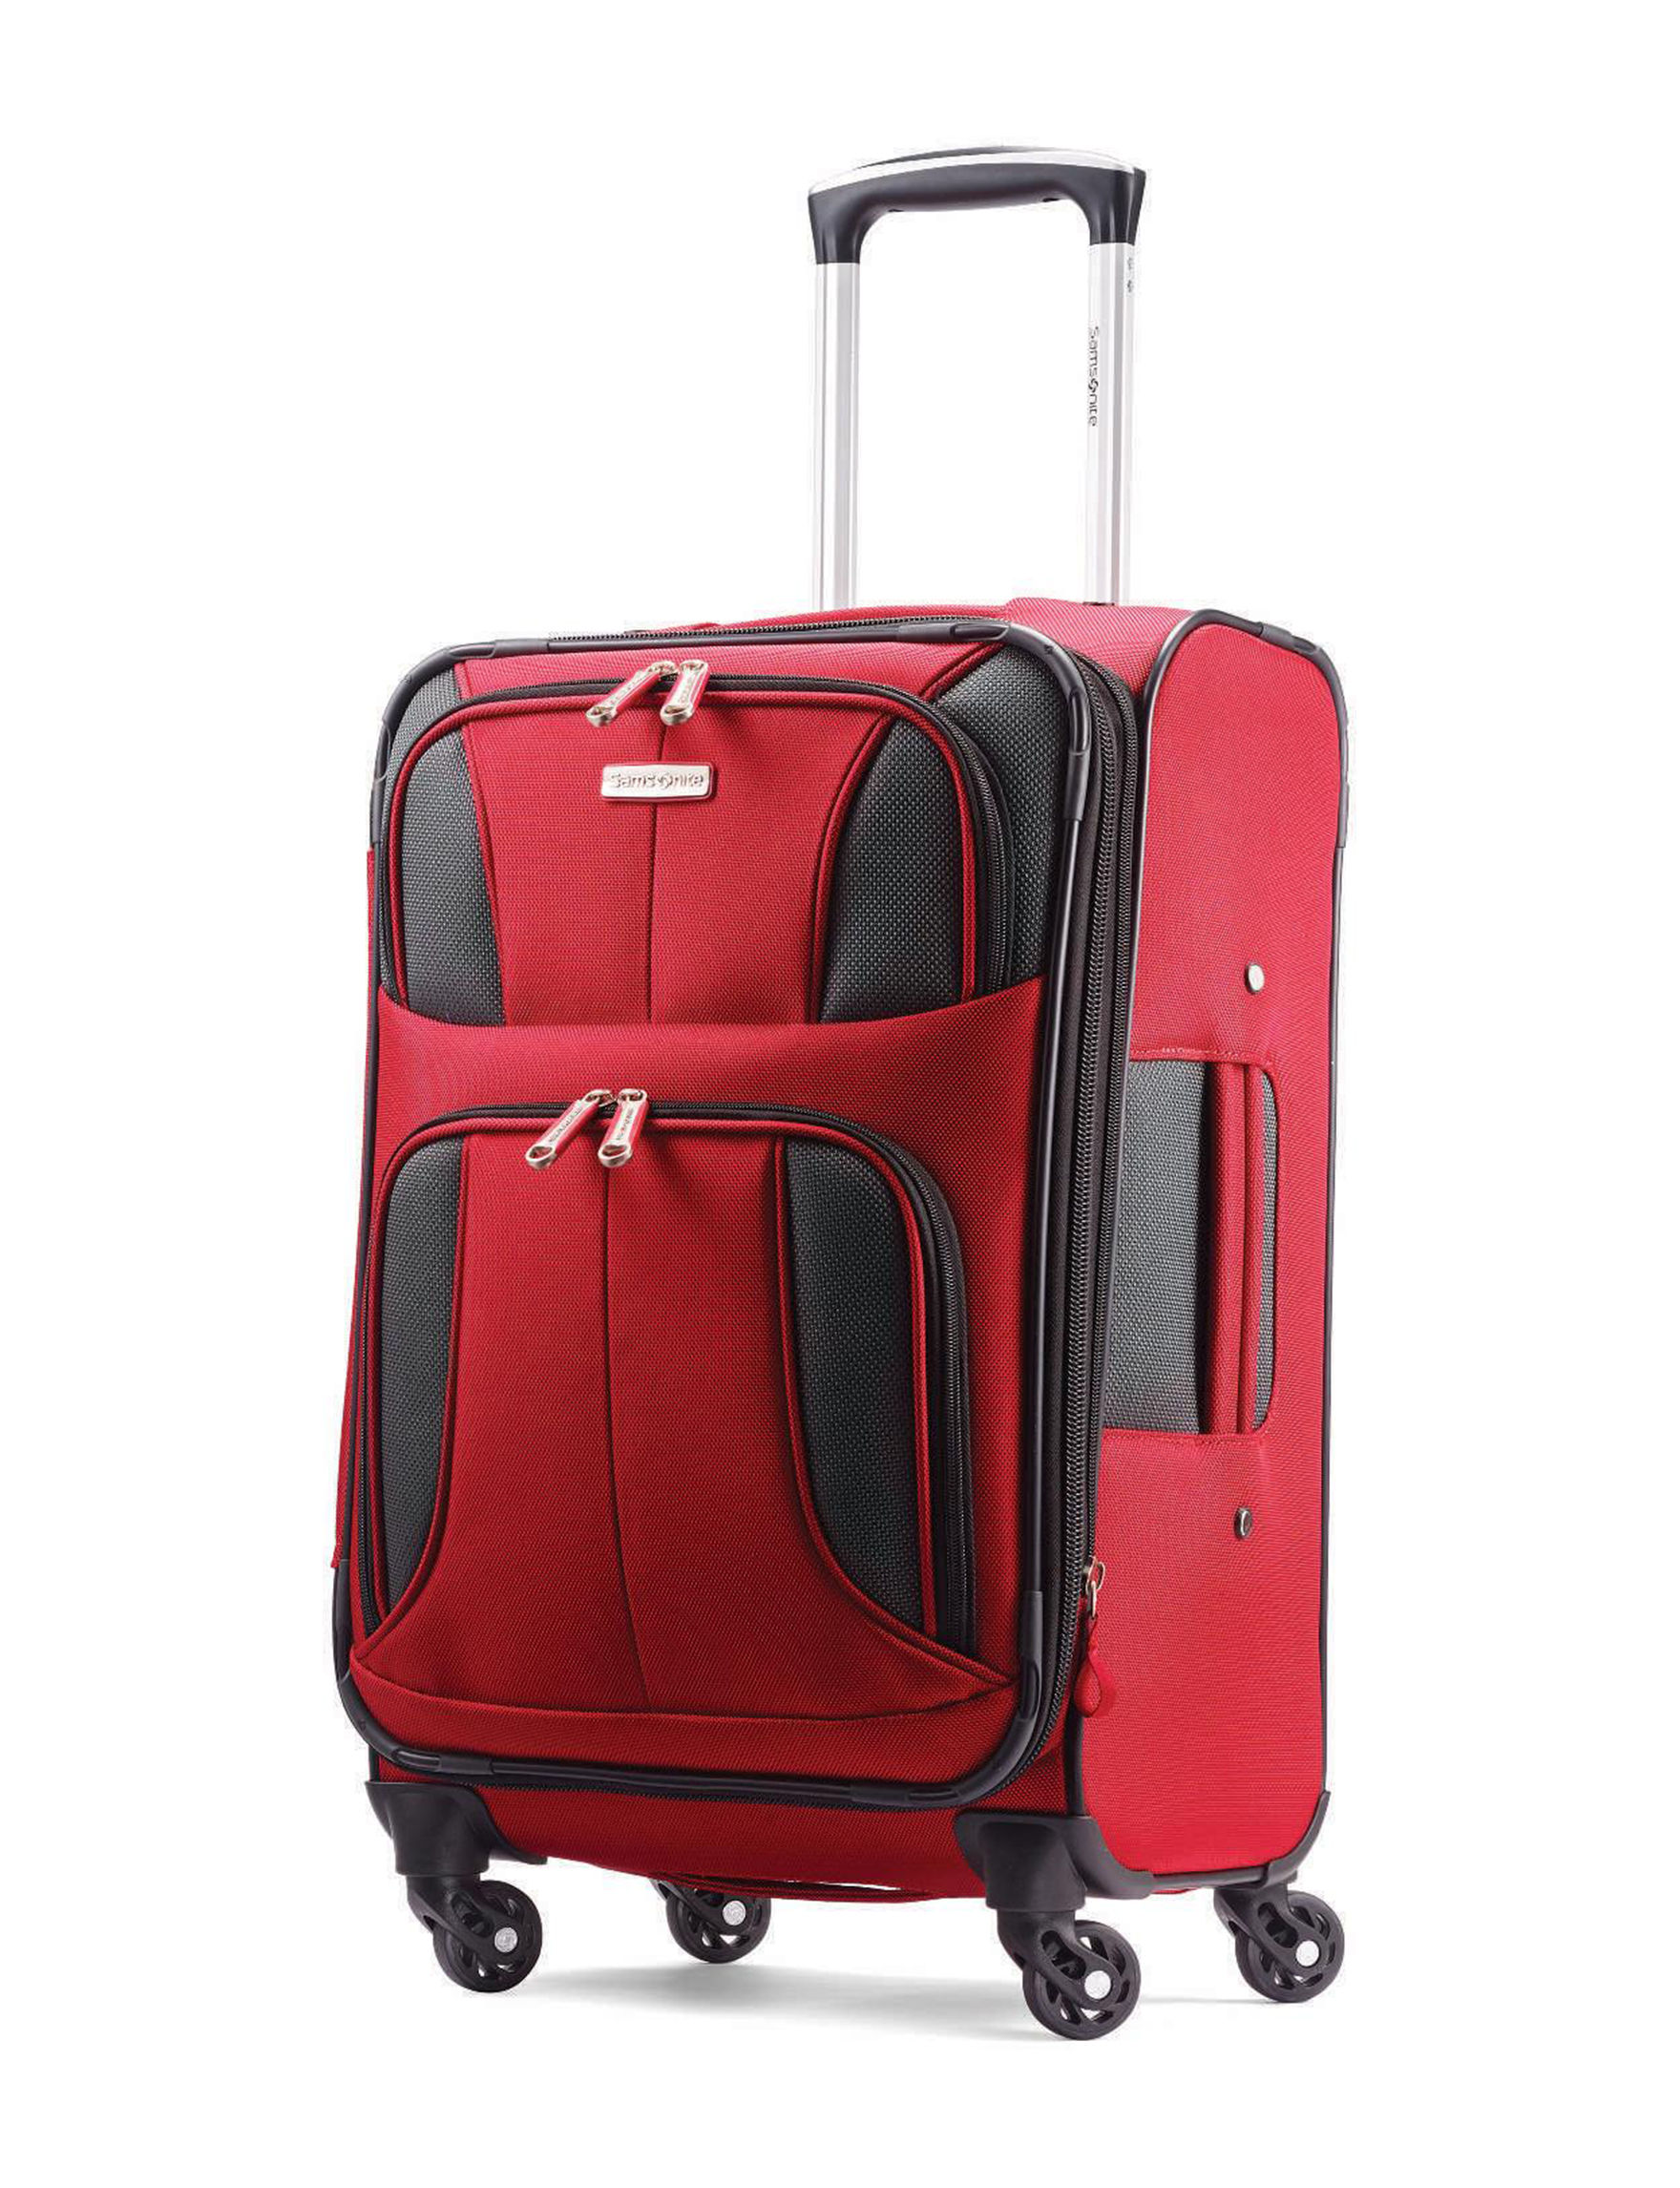 Samsonite Red Upright Spinners